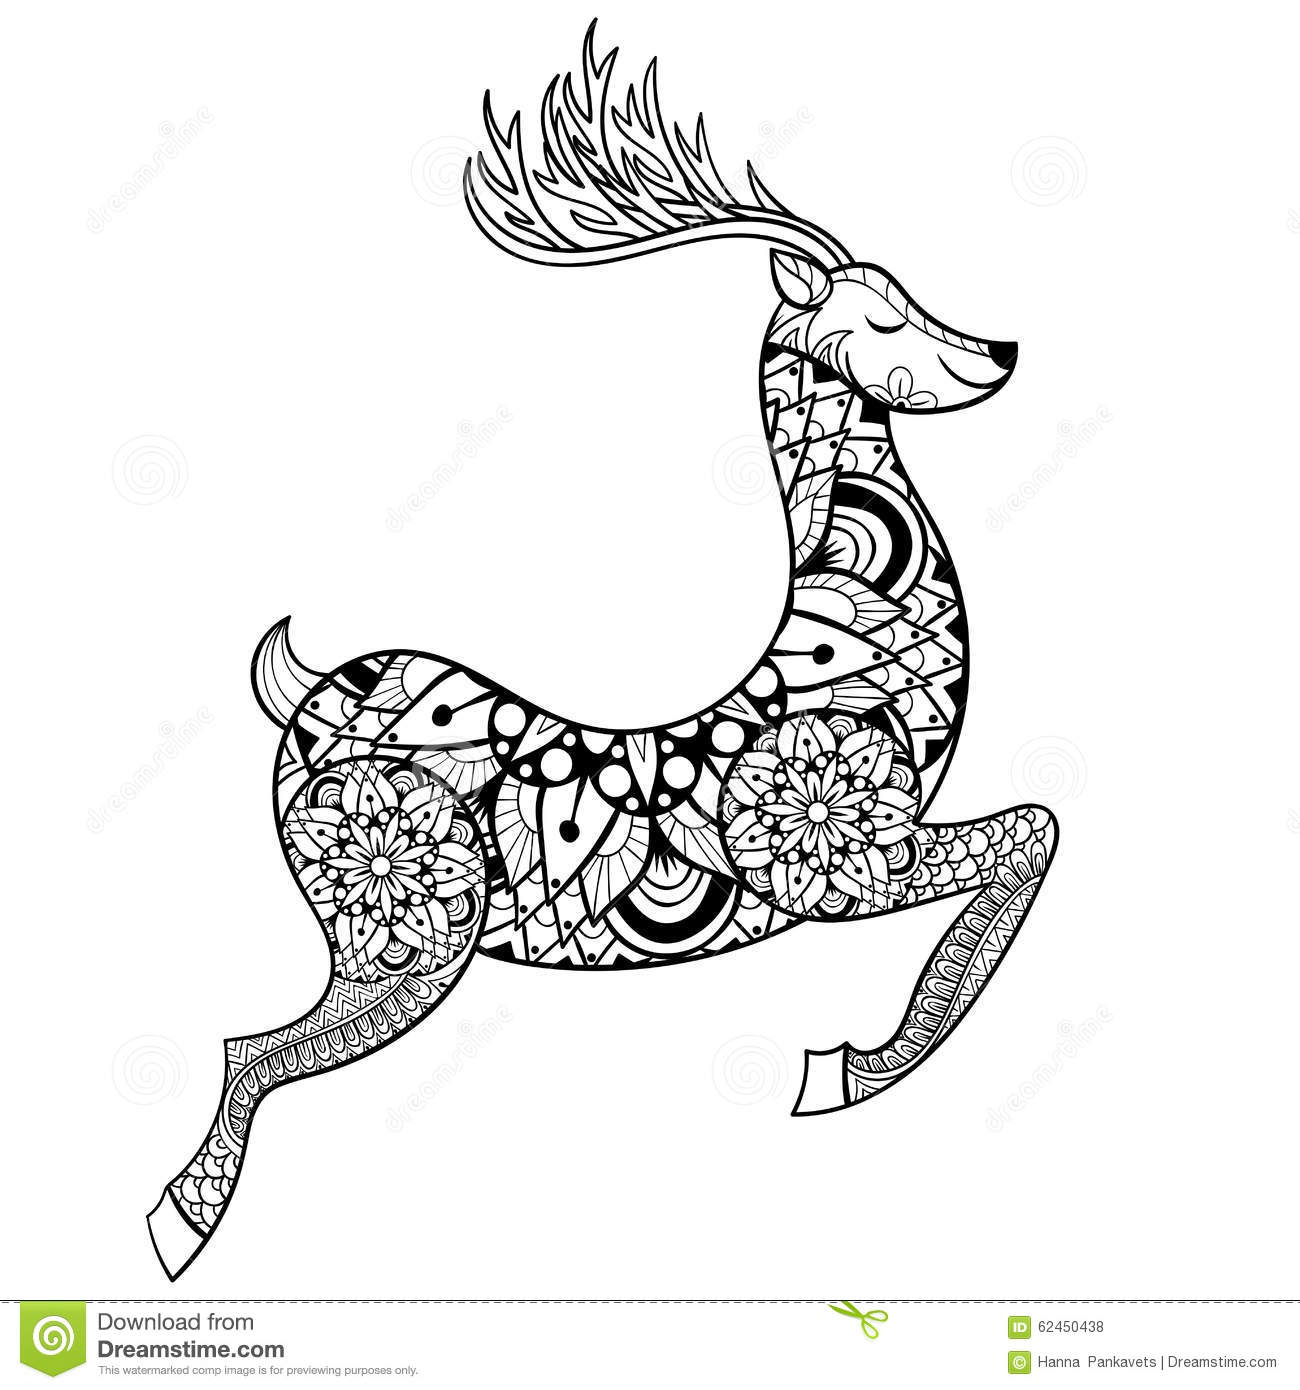 Free coloring page deer - Royalty Free Vector